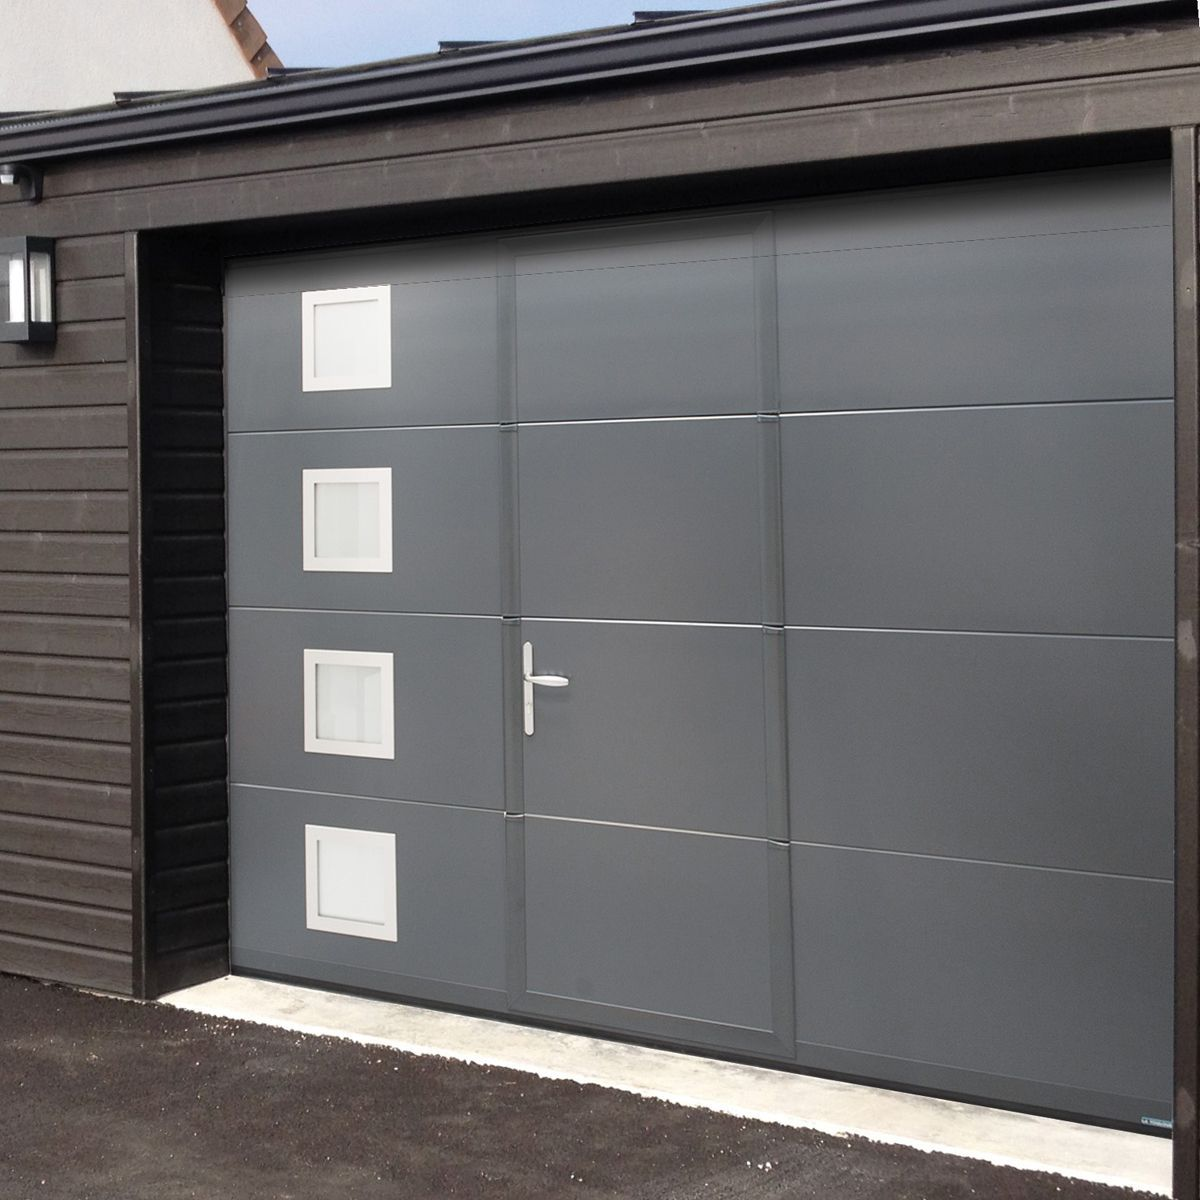 Portes de garage fabriqu es en france sur mesure isoferm for Porte de garage xxl